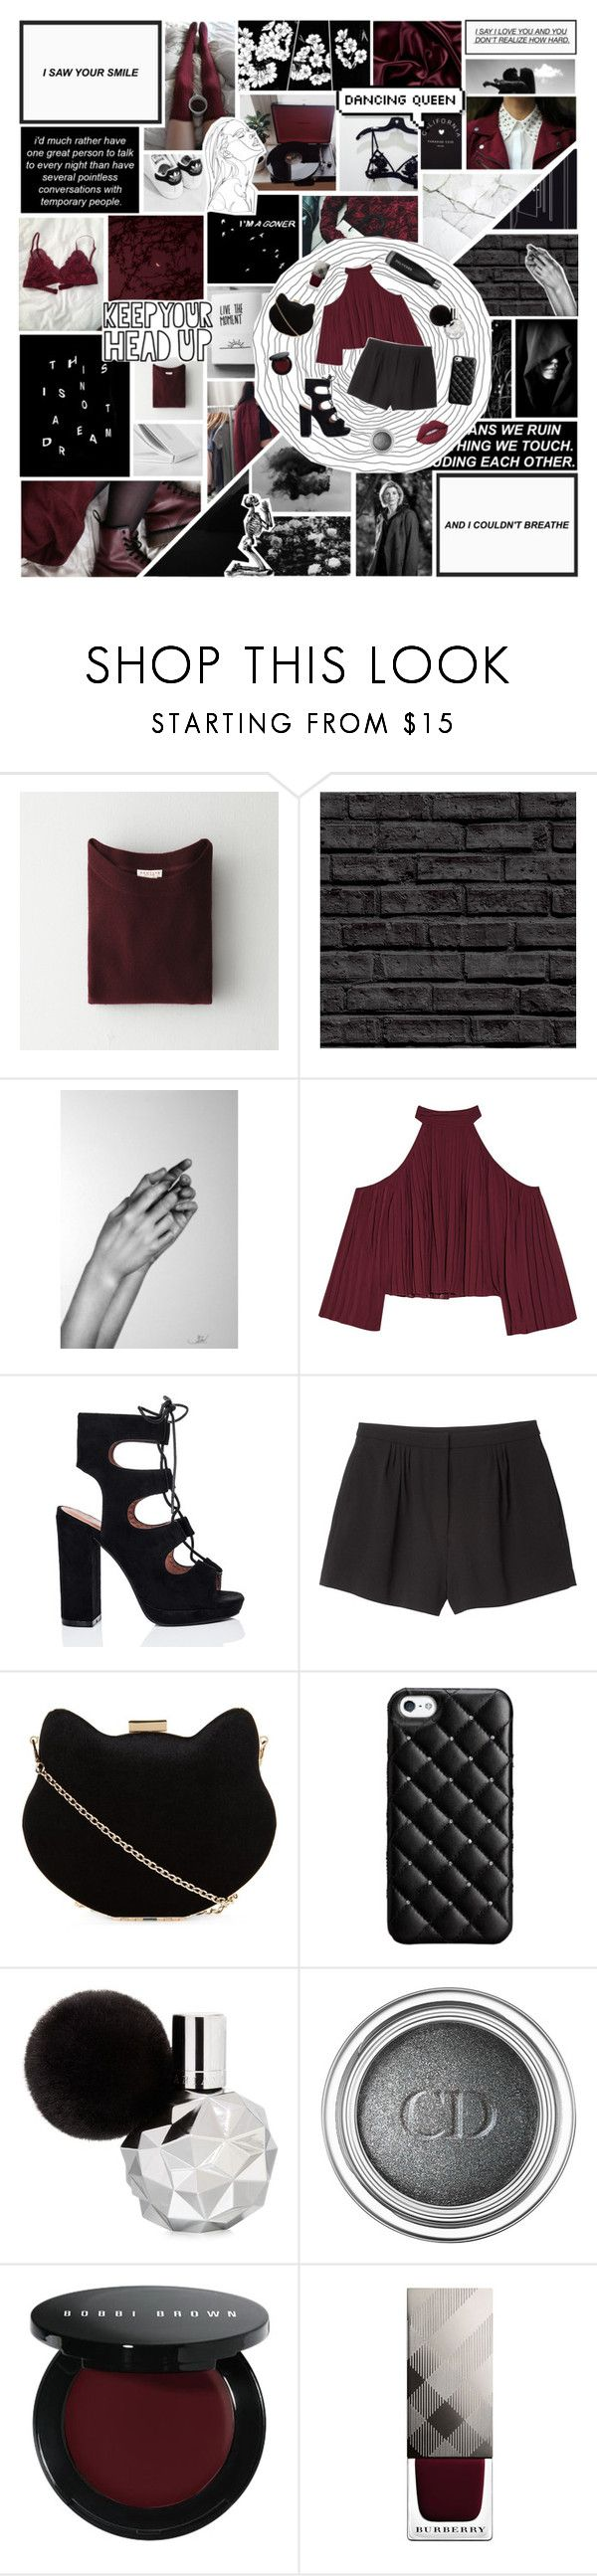 """// shot a man down"" by i-get-a-little-bit-breathless ❤ liked on Polyvore featuring Demylee, Chanel, W118 by Walter Baker, SpyLoveBuy, Monki, New Look, Case-Mate, Christian Dior, Bobbi Brown Cosmetics and Burberry"